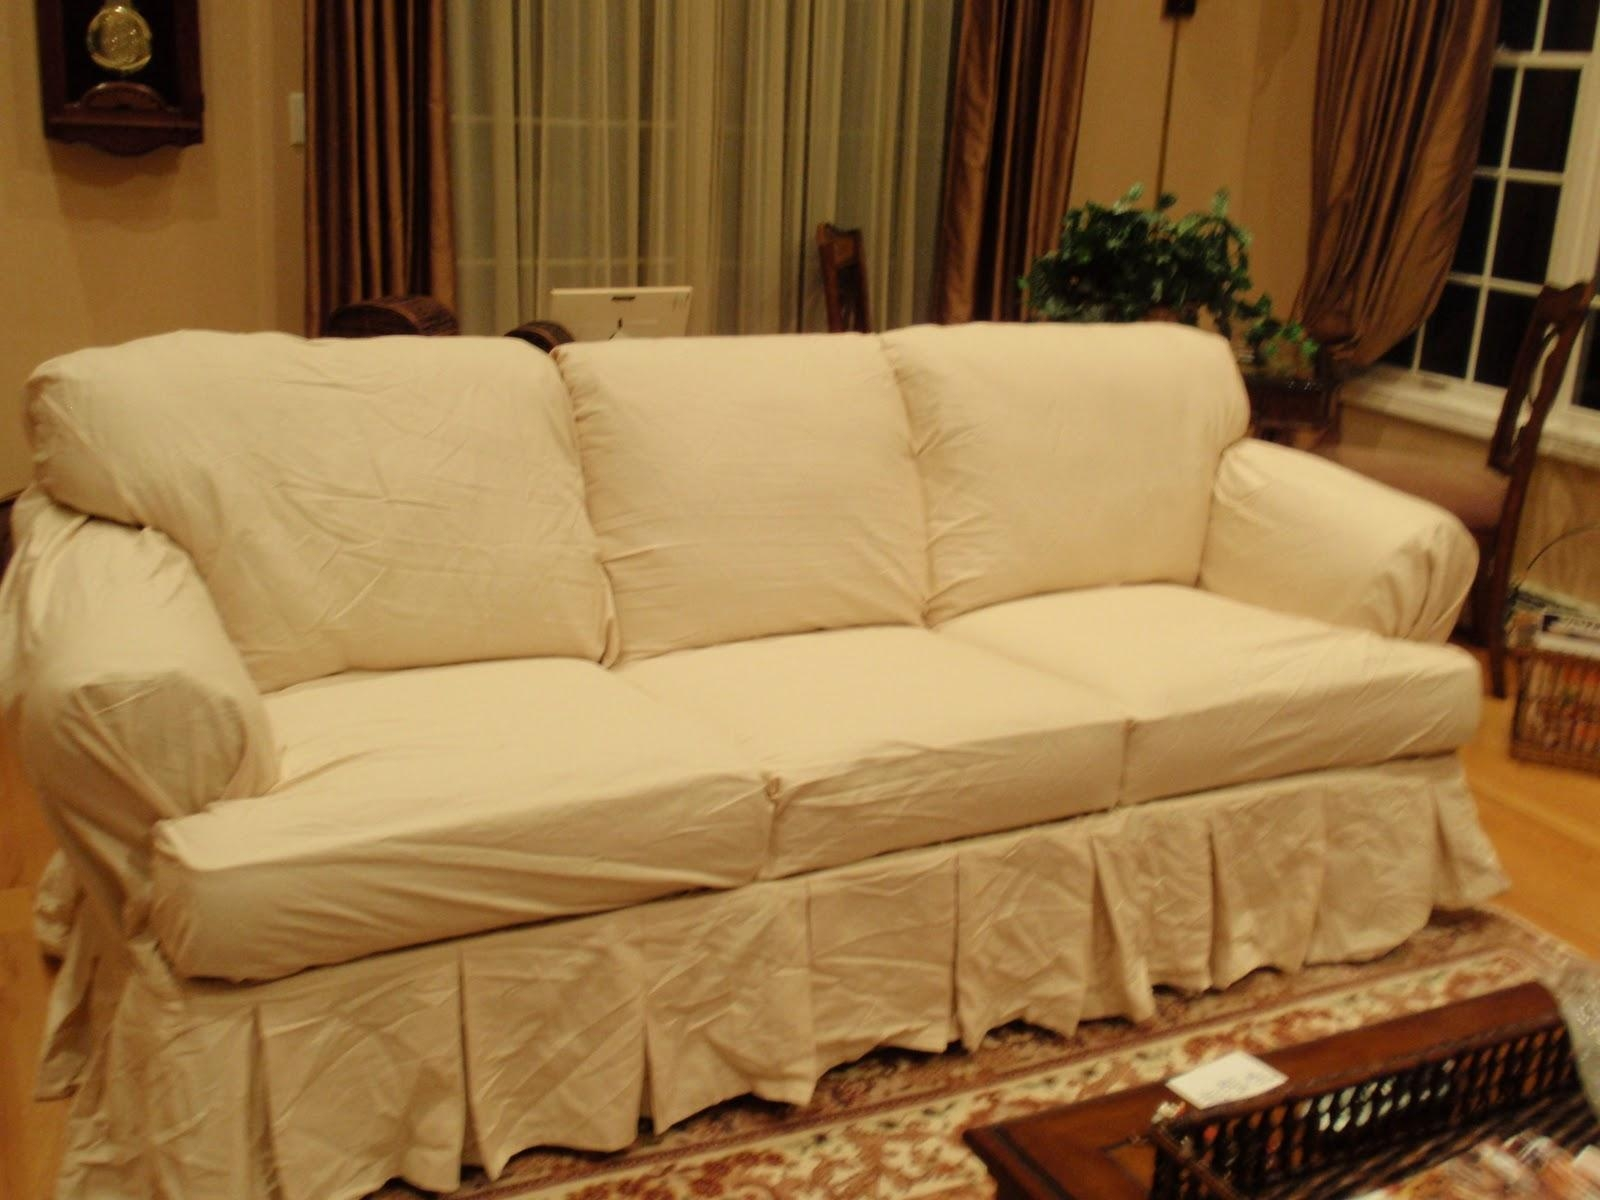 Furniture: Slipcovers For Sectional Sofa | 3 Cushion Sofa Regarding Slipcovers For 3 Cushion Sofas (Photo 11 of 20)